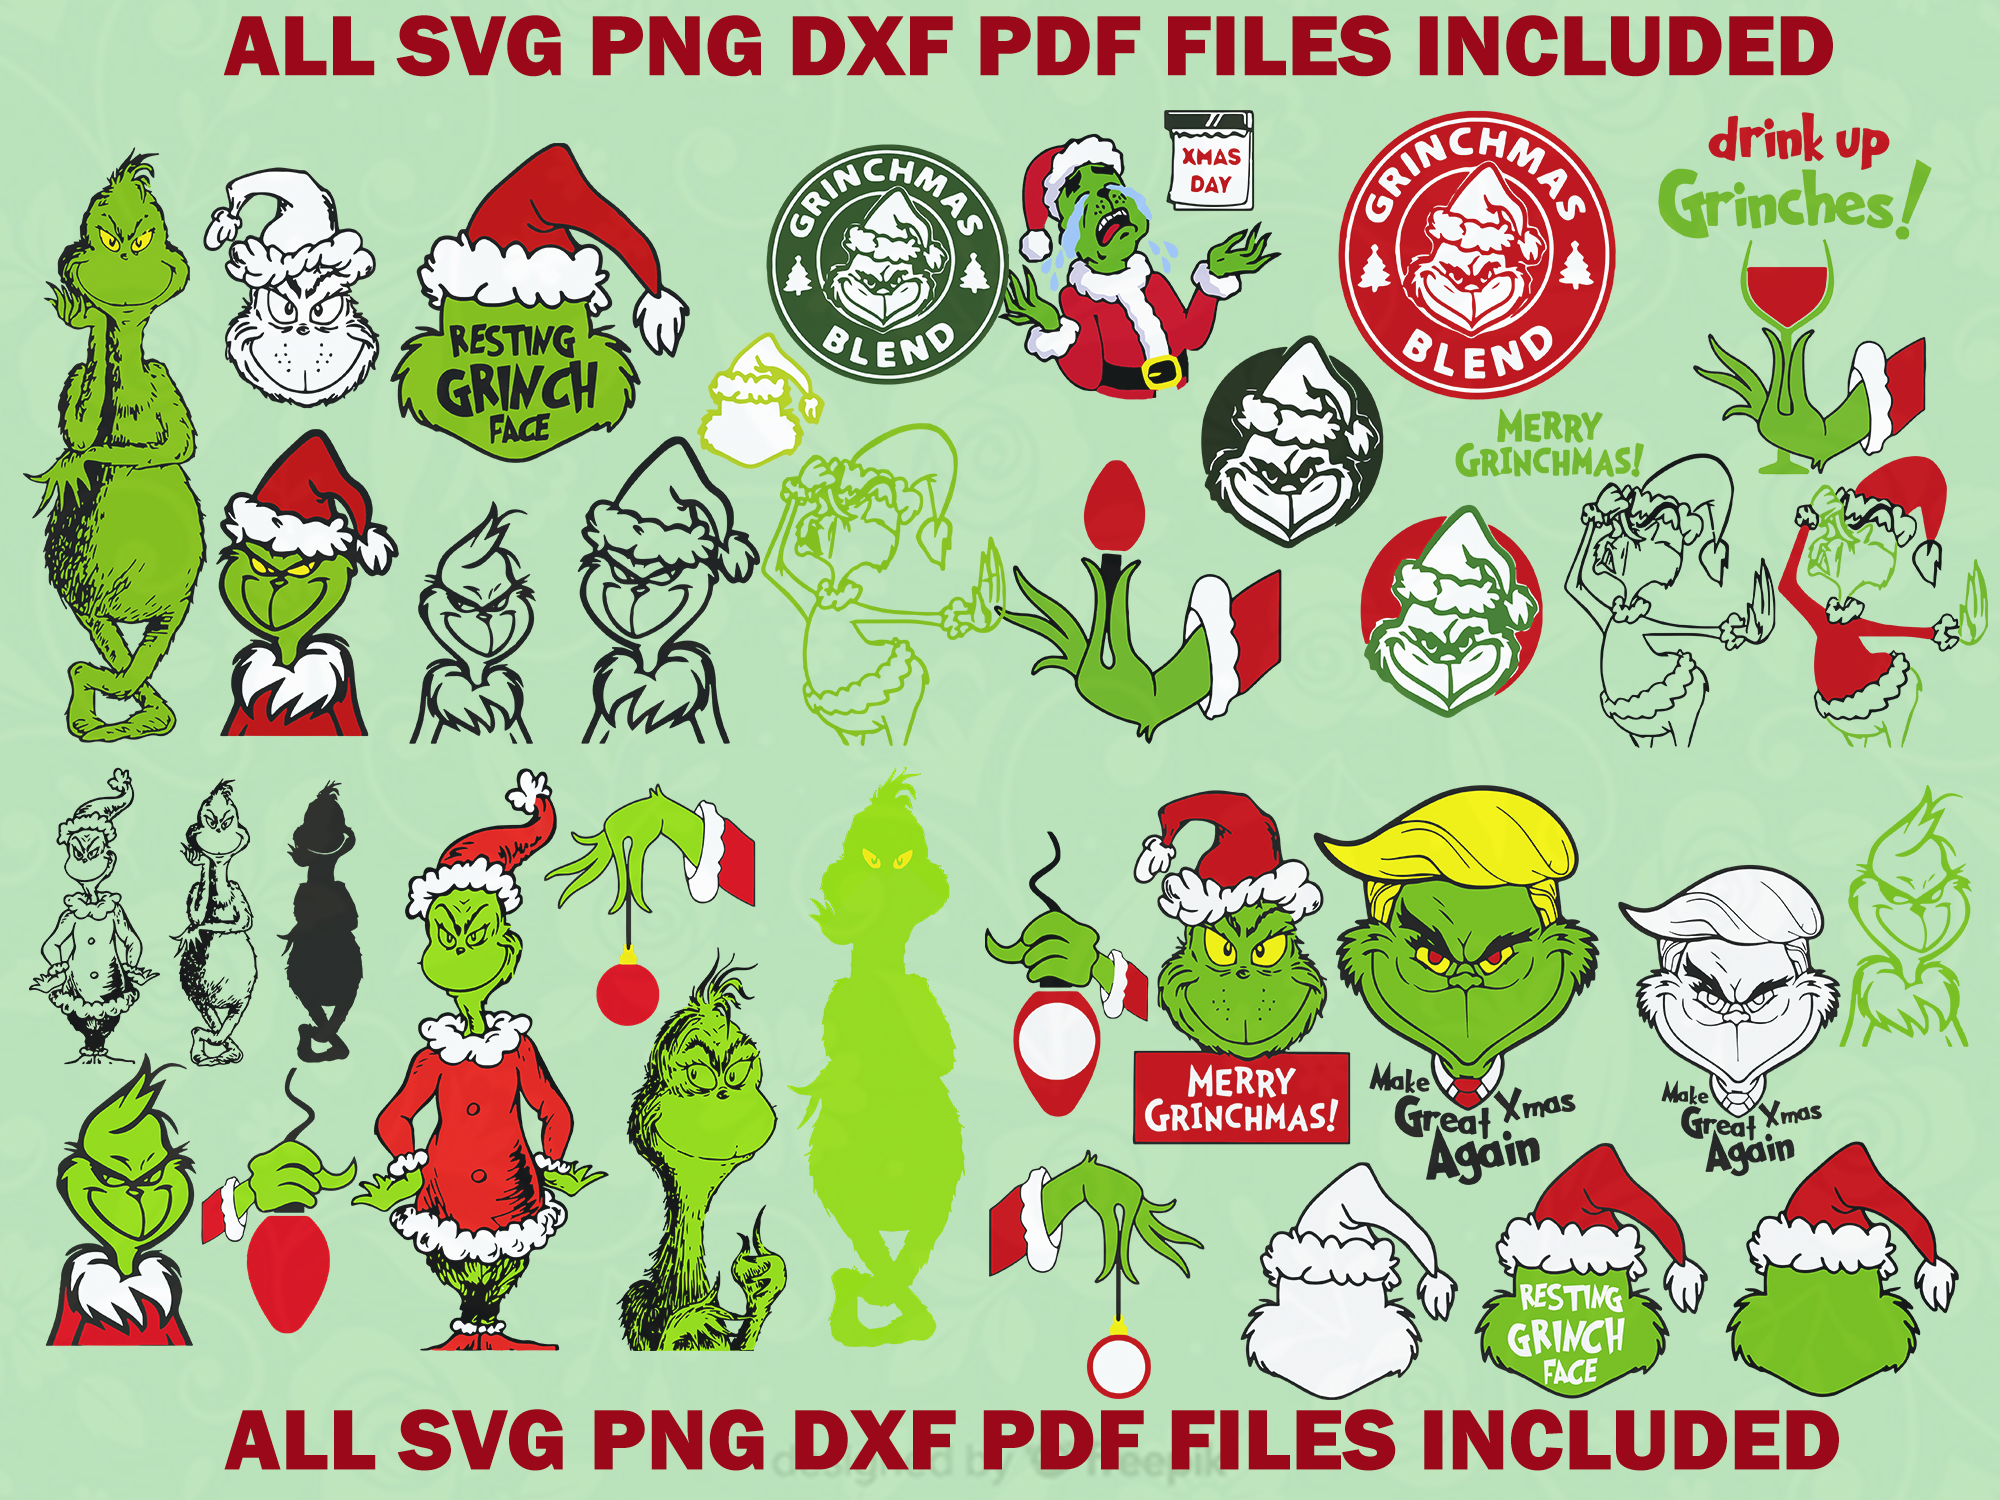 The grinch svg bundle, The grinch face, The grinch hand